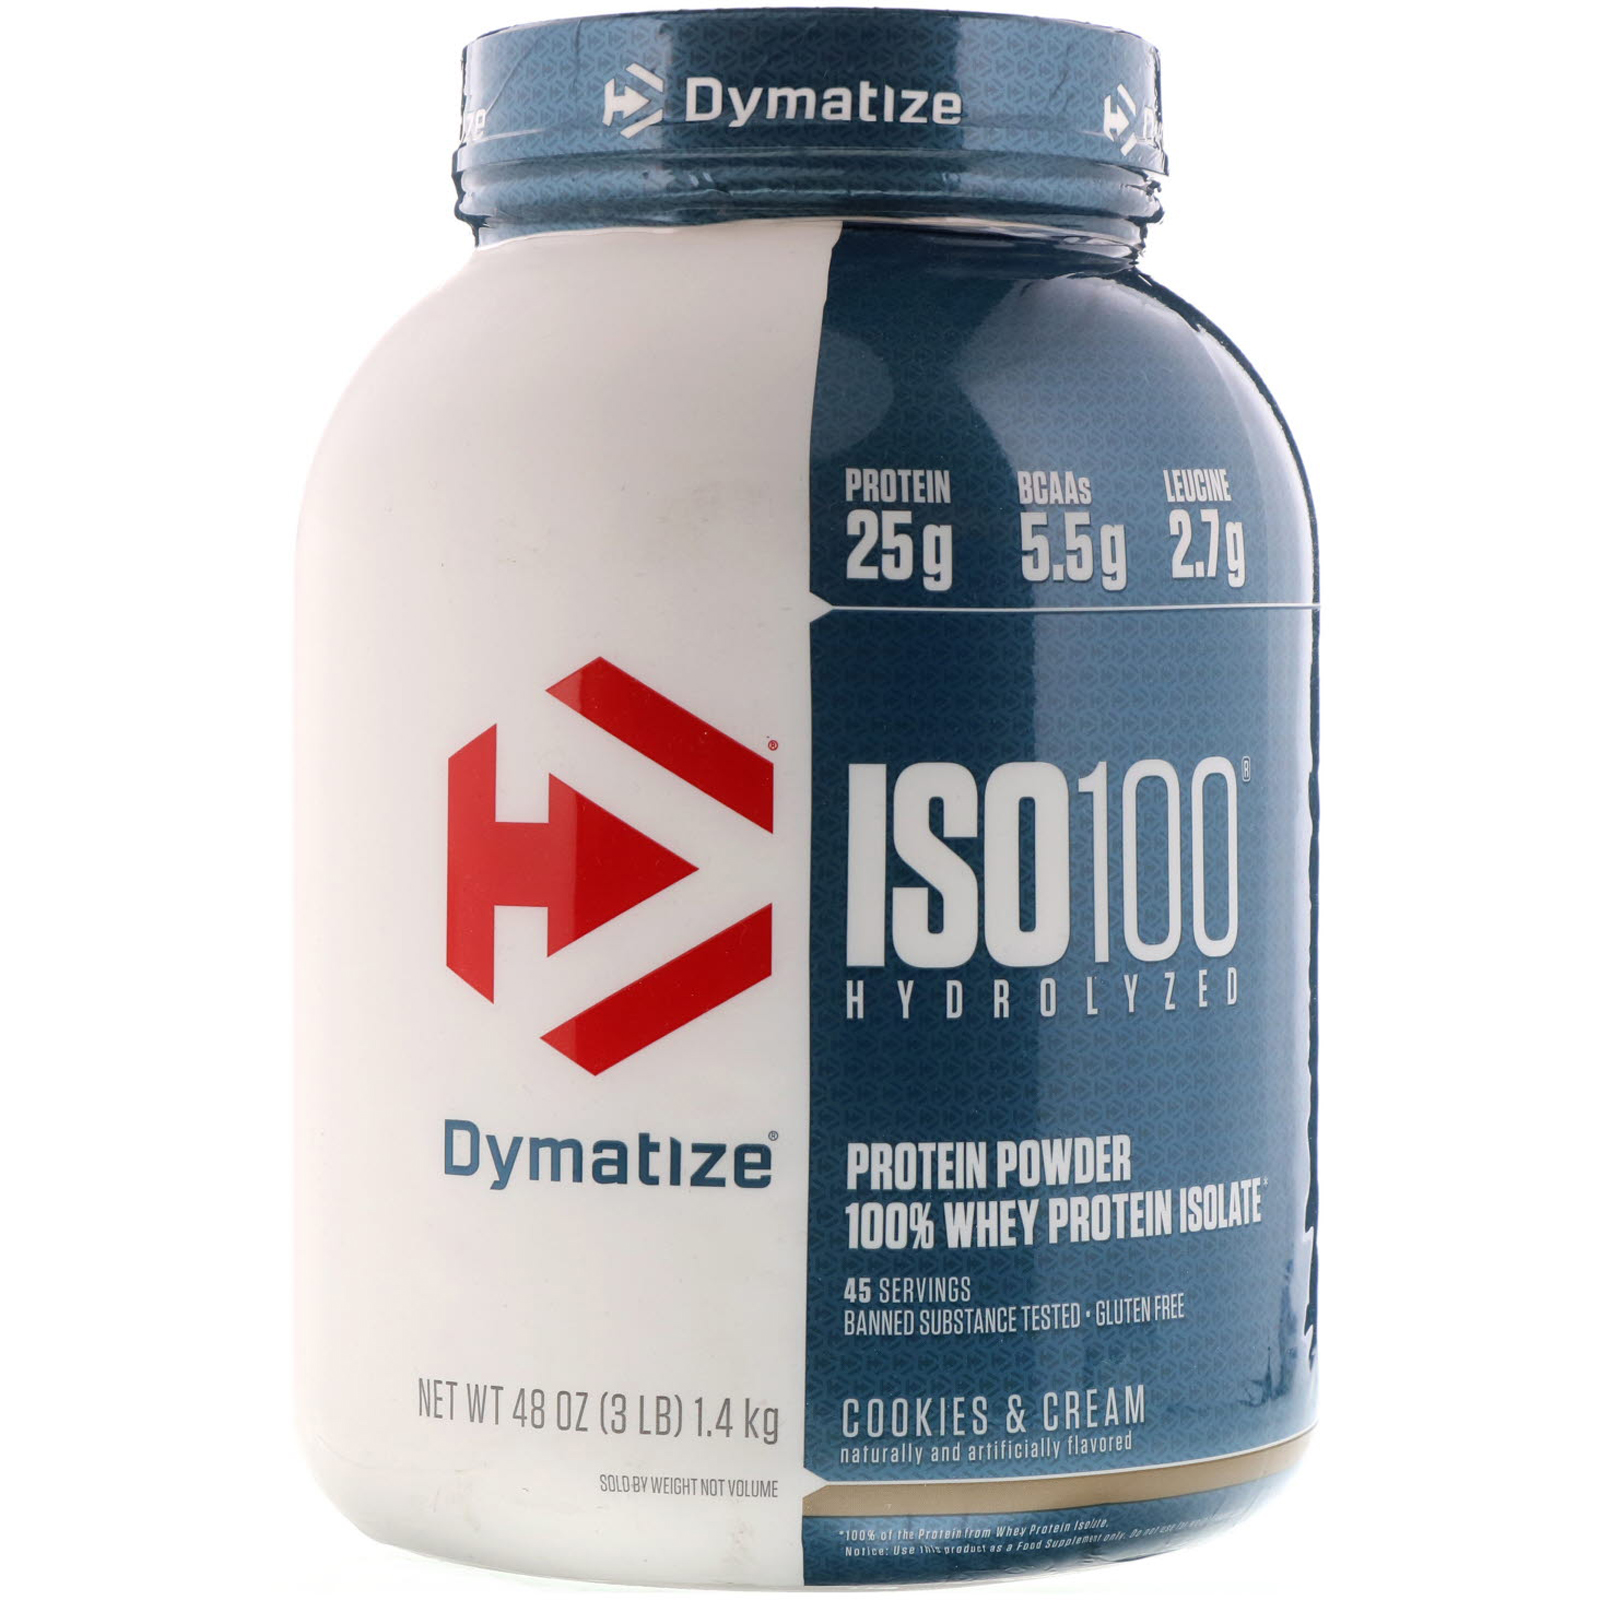 Dymatize Nutrition ISO 100 Hydrolyzed Whey Protein Isolate Cookies Cream